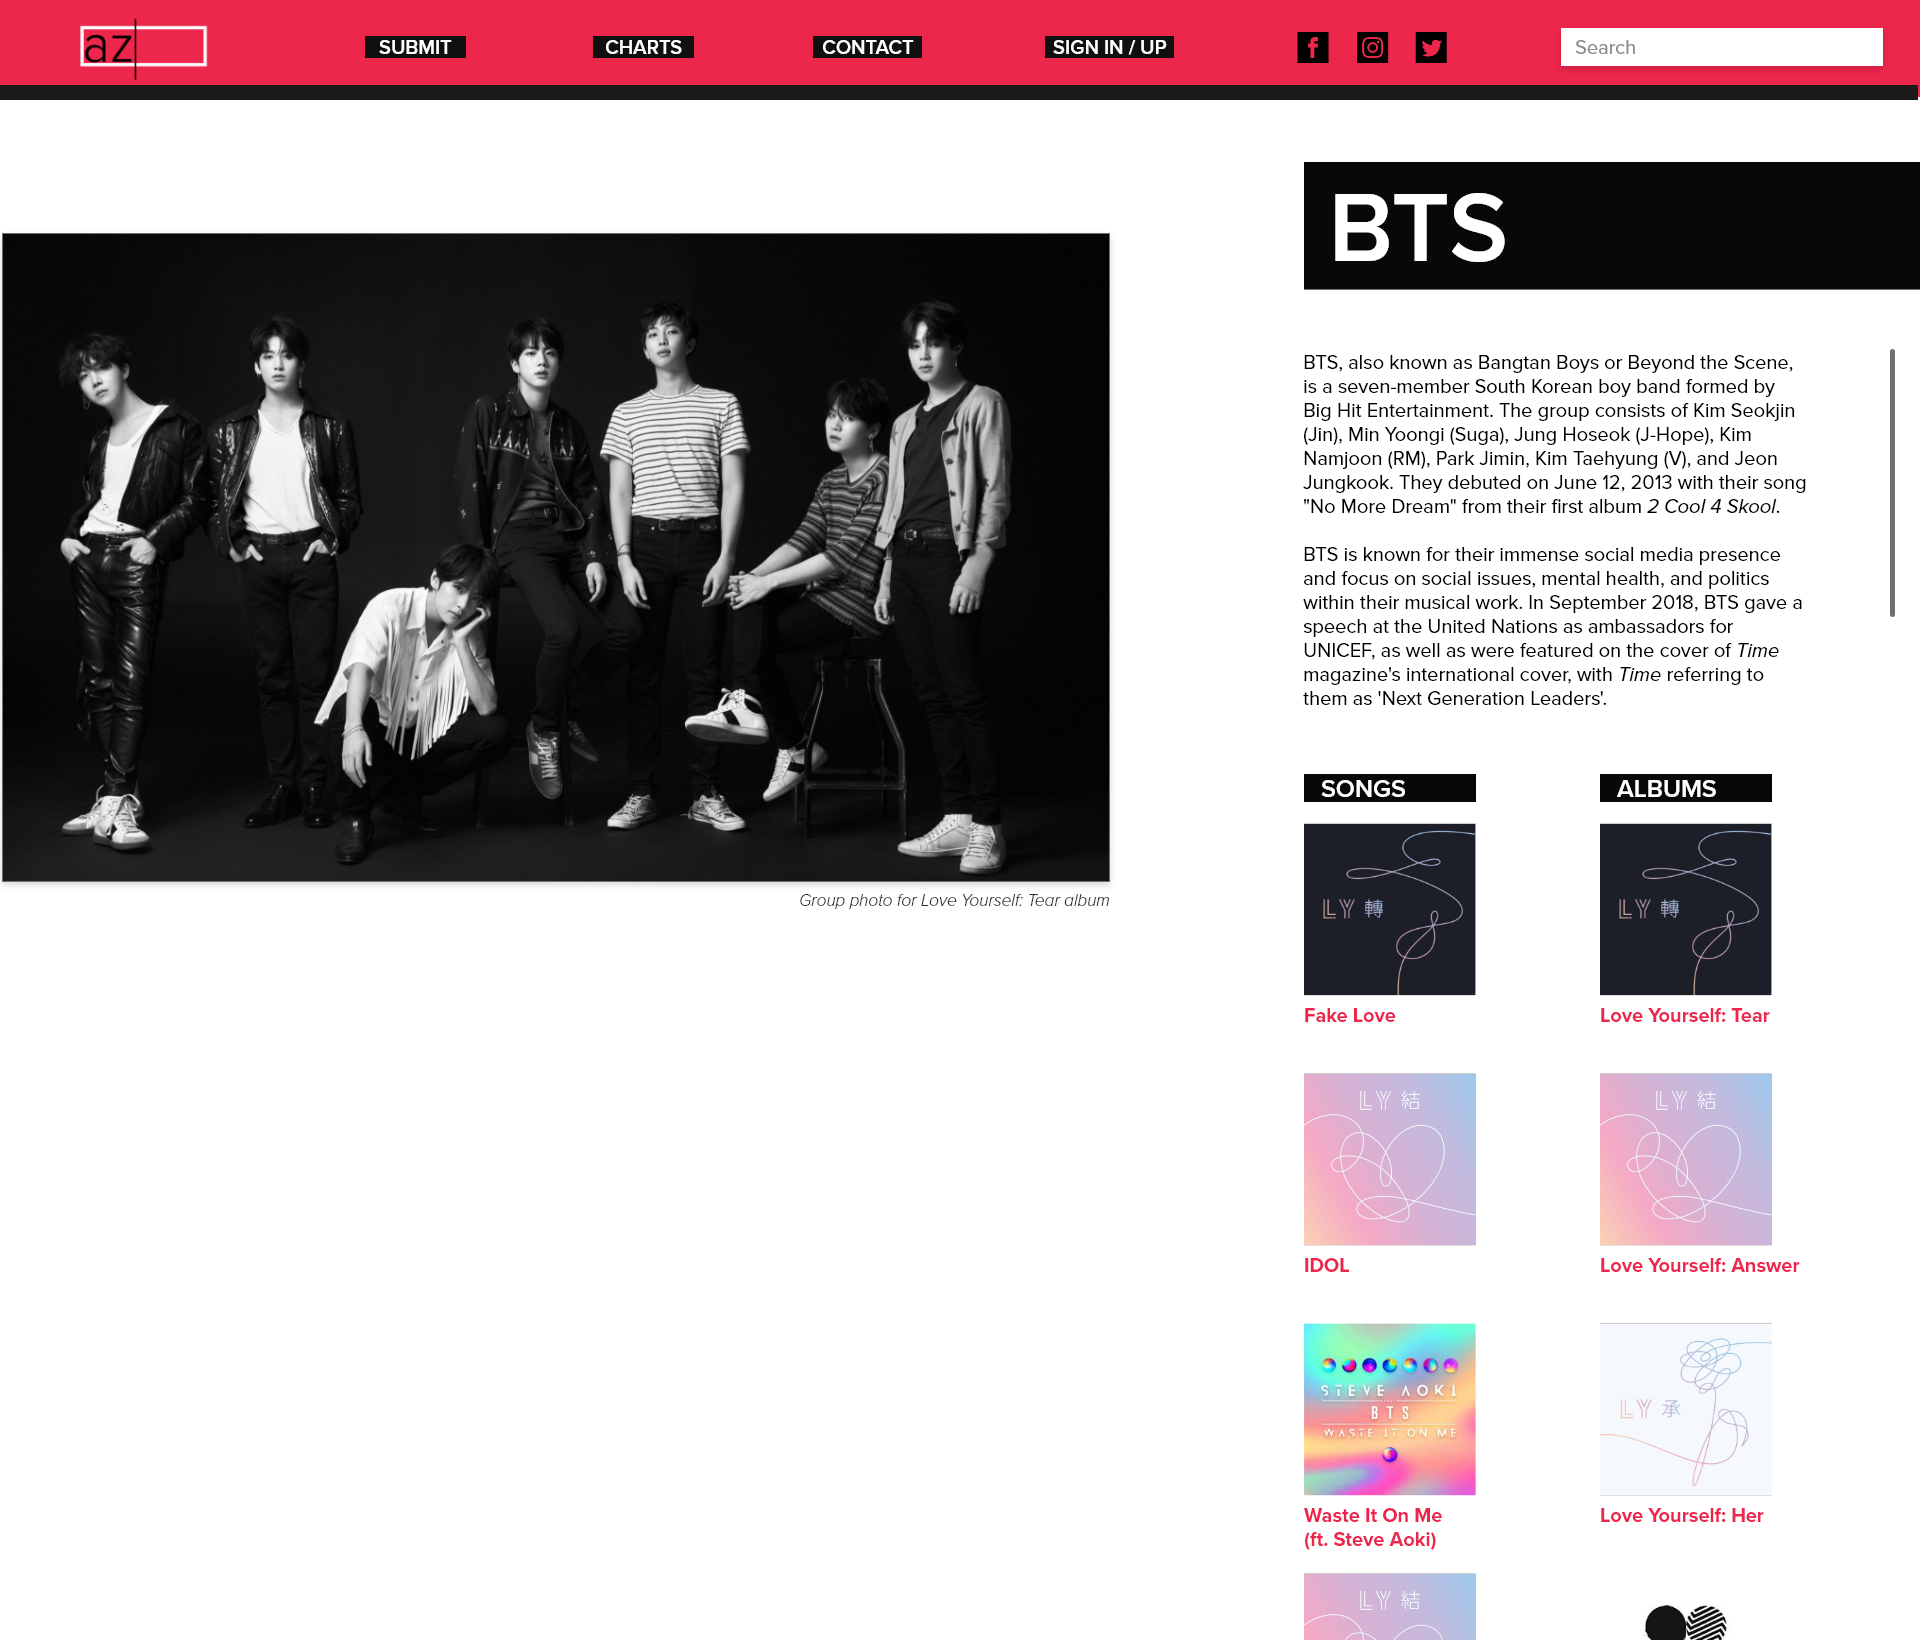 Redesigned artist page—a large, static photo of the artist(s) is provided on the left, while a short biography and list of the artist's songs and album are provided on the right column.